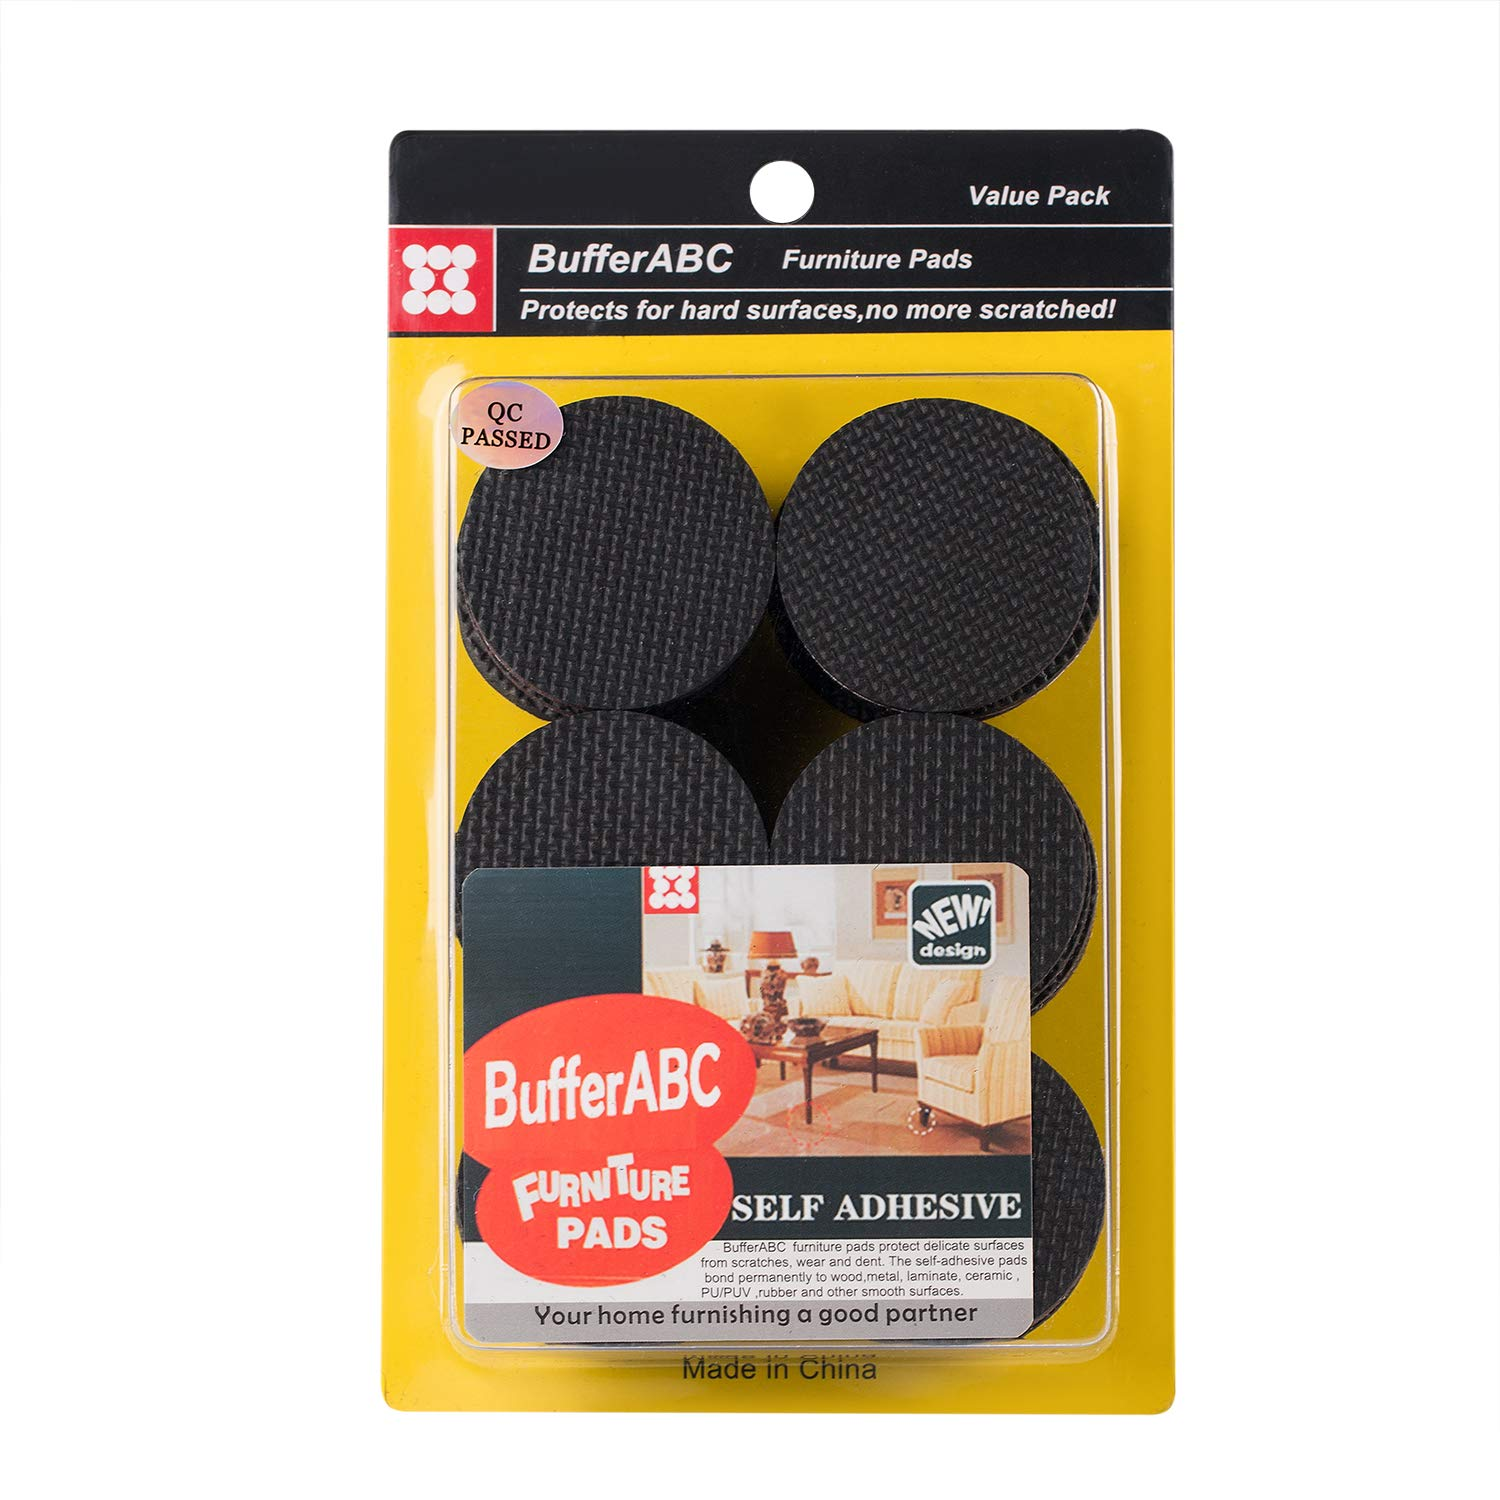 Trustful 1 Pack Self Adhesive Rubber Door Buffer Feet Pad Silicone Clear Feet Bumpers For Door Accessories Furniture Legs Pads Price Remains Stable 24 Pcs